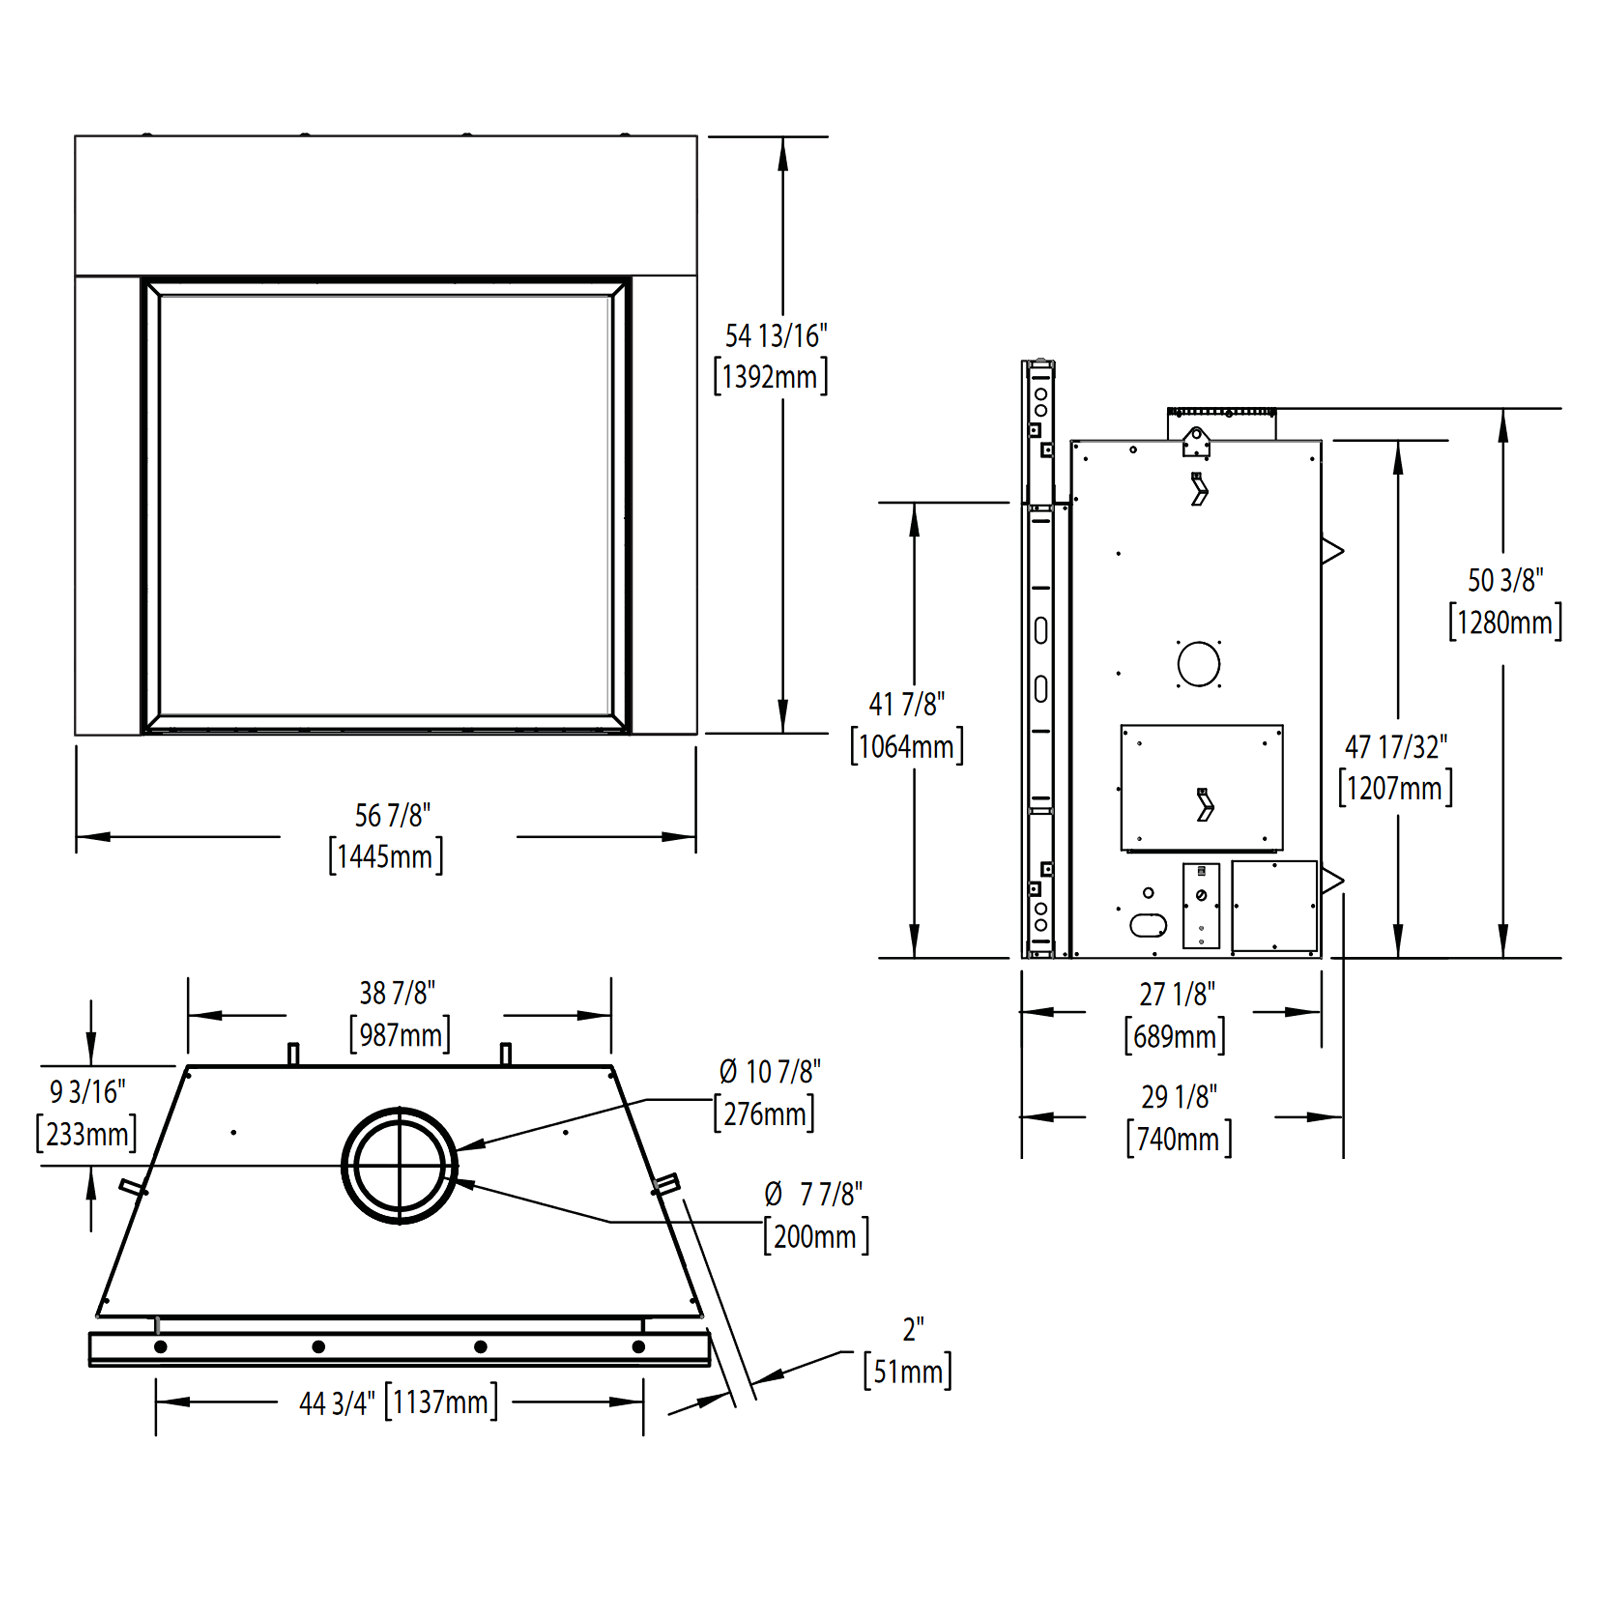 HDX52 Technical Drawing 1